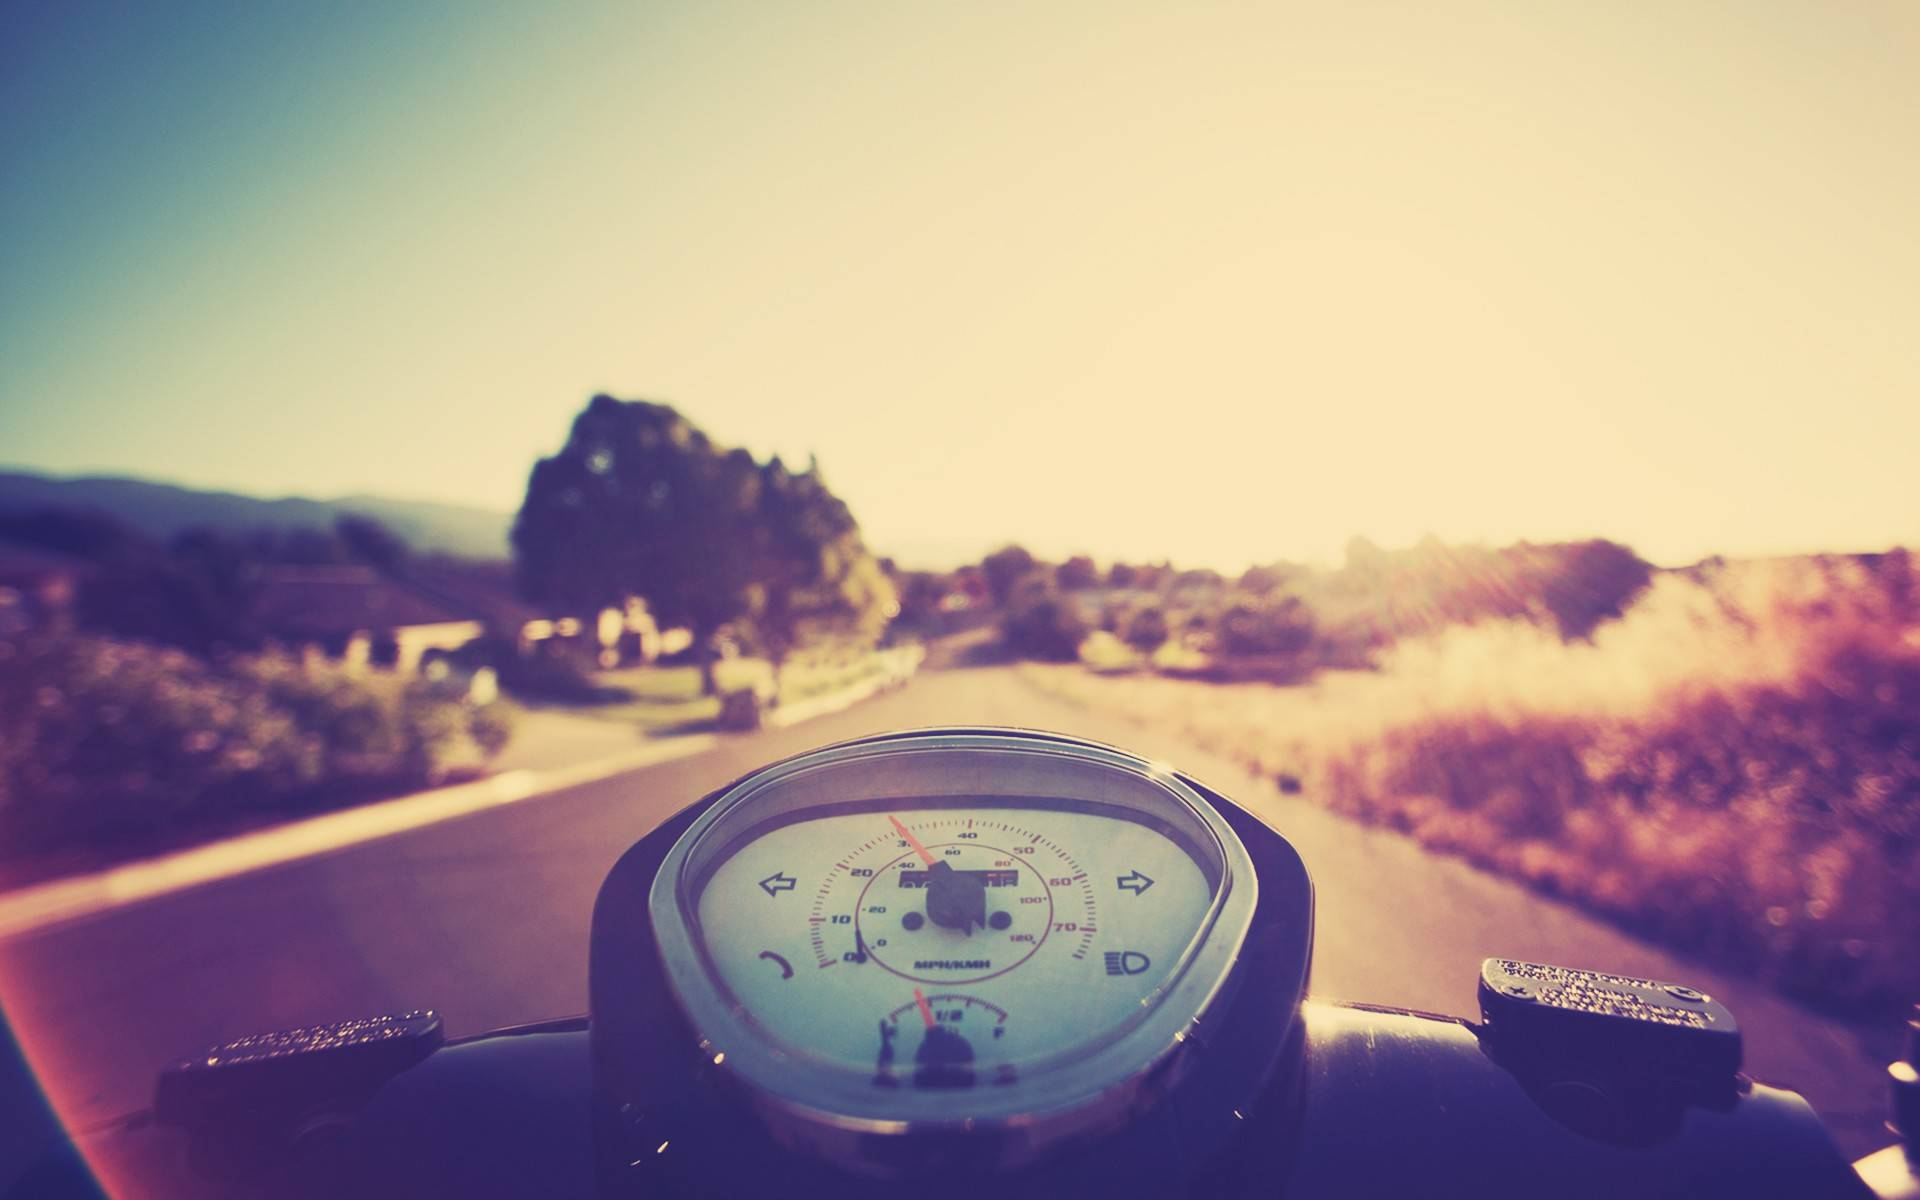 2014 leave a comment hd walls wallpapers woman on a vespa wallpaper 1920x1200